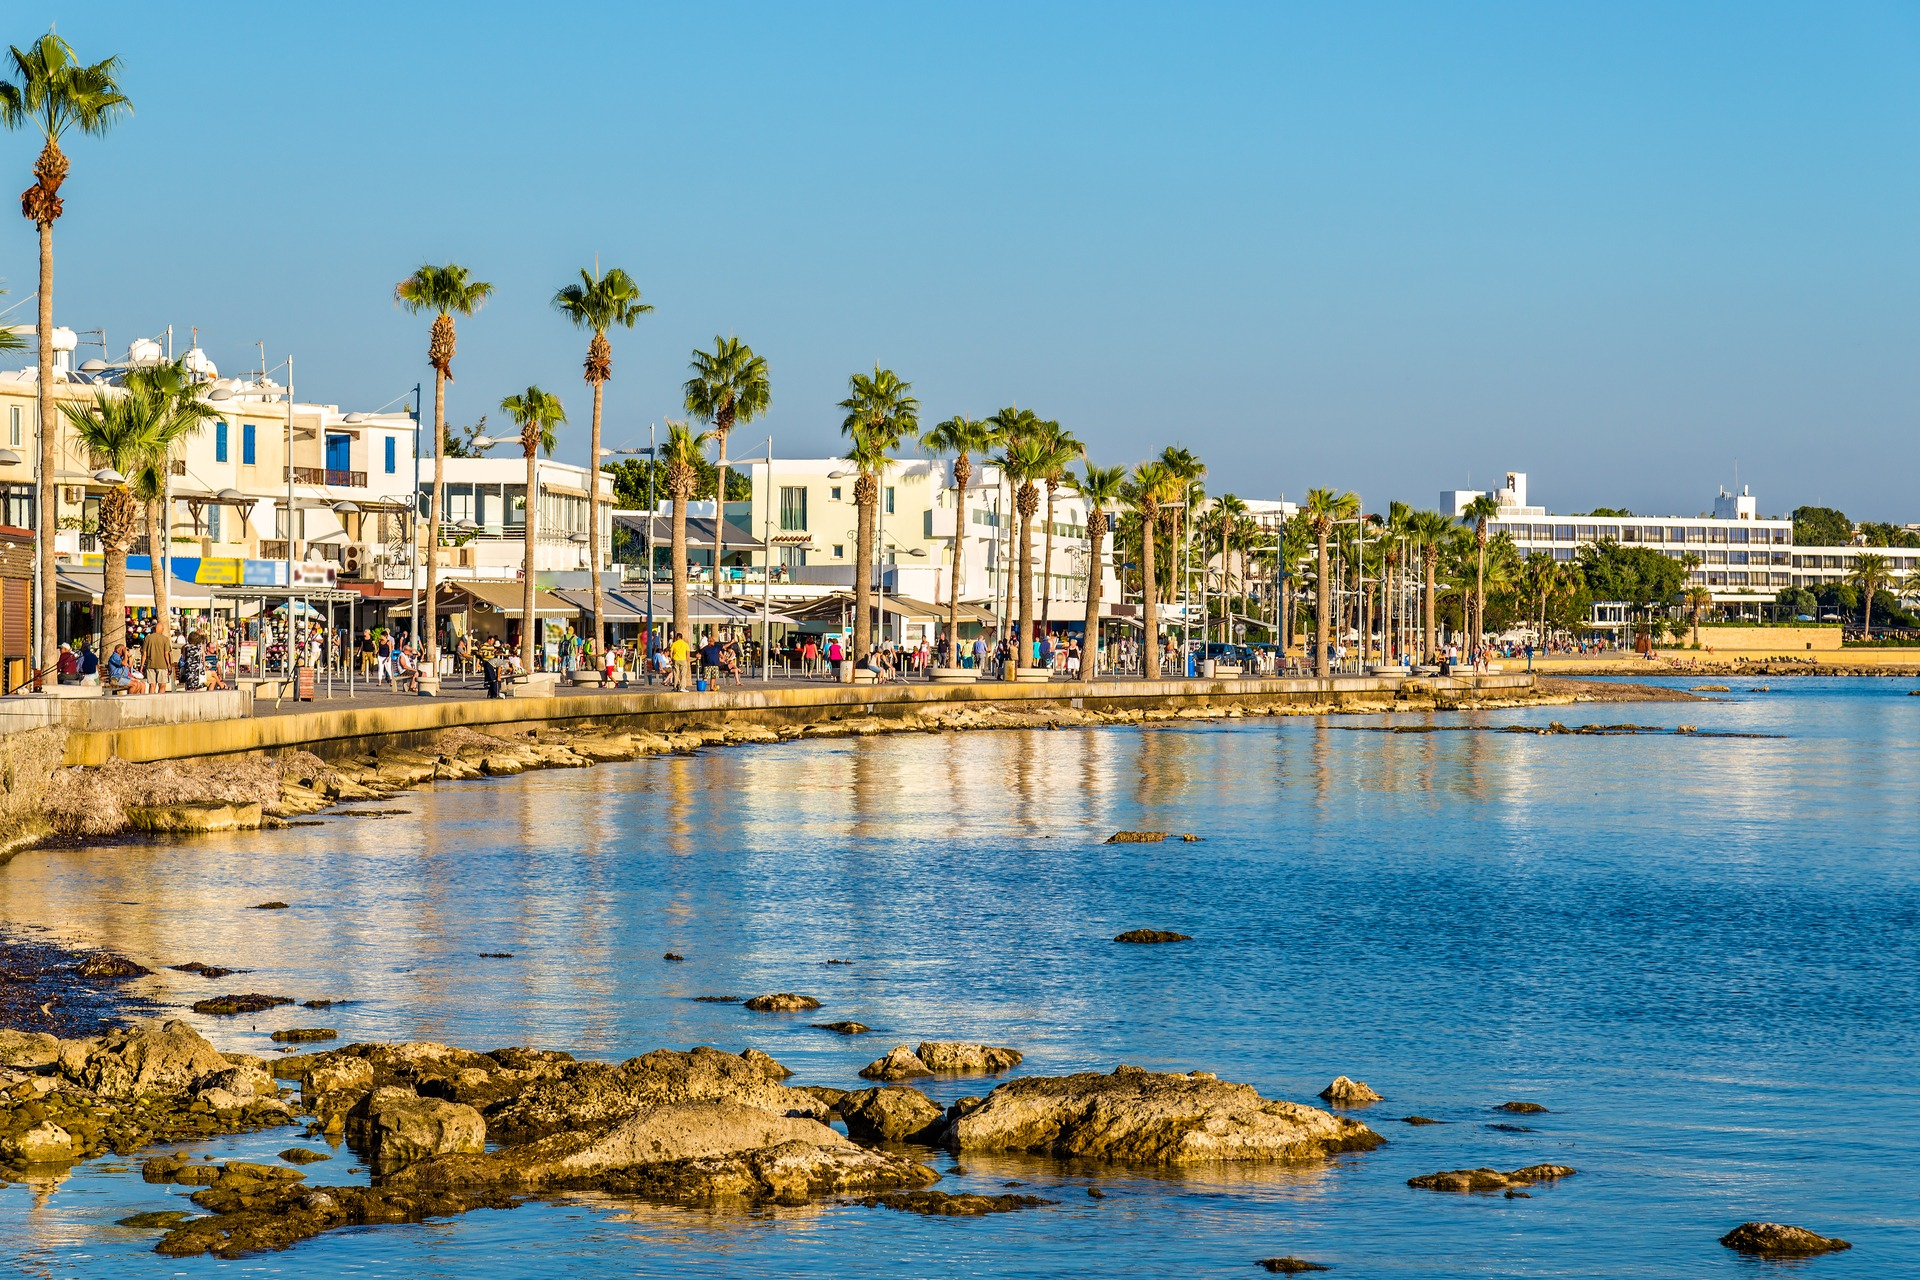 View of the Embankment at Paphos Harbour, Cyprus